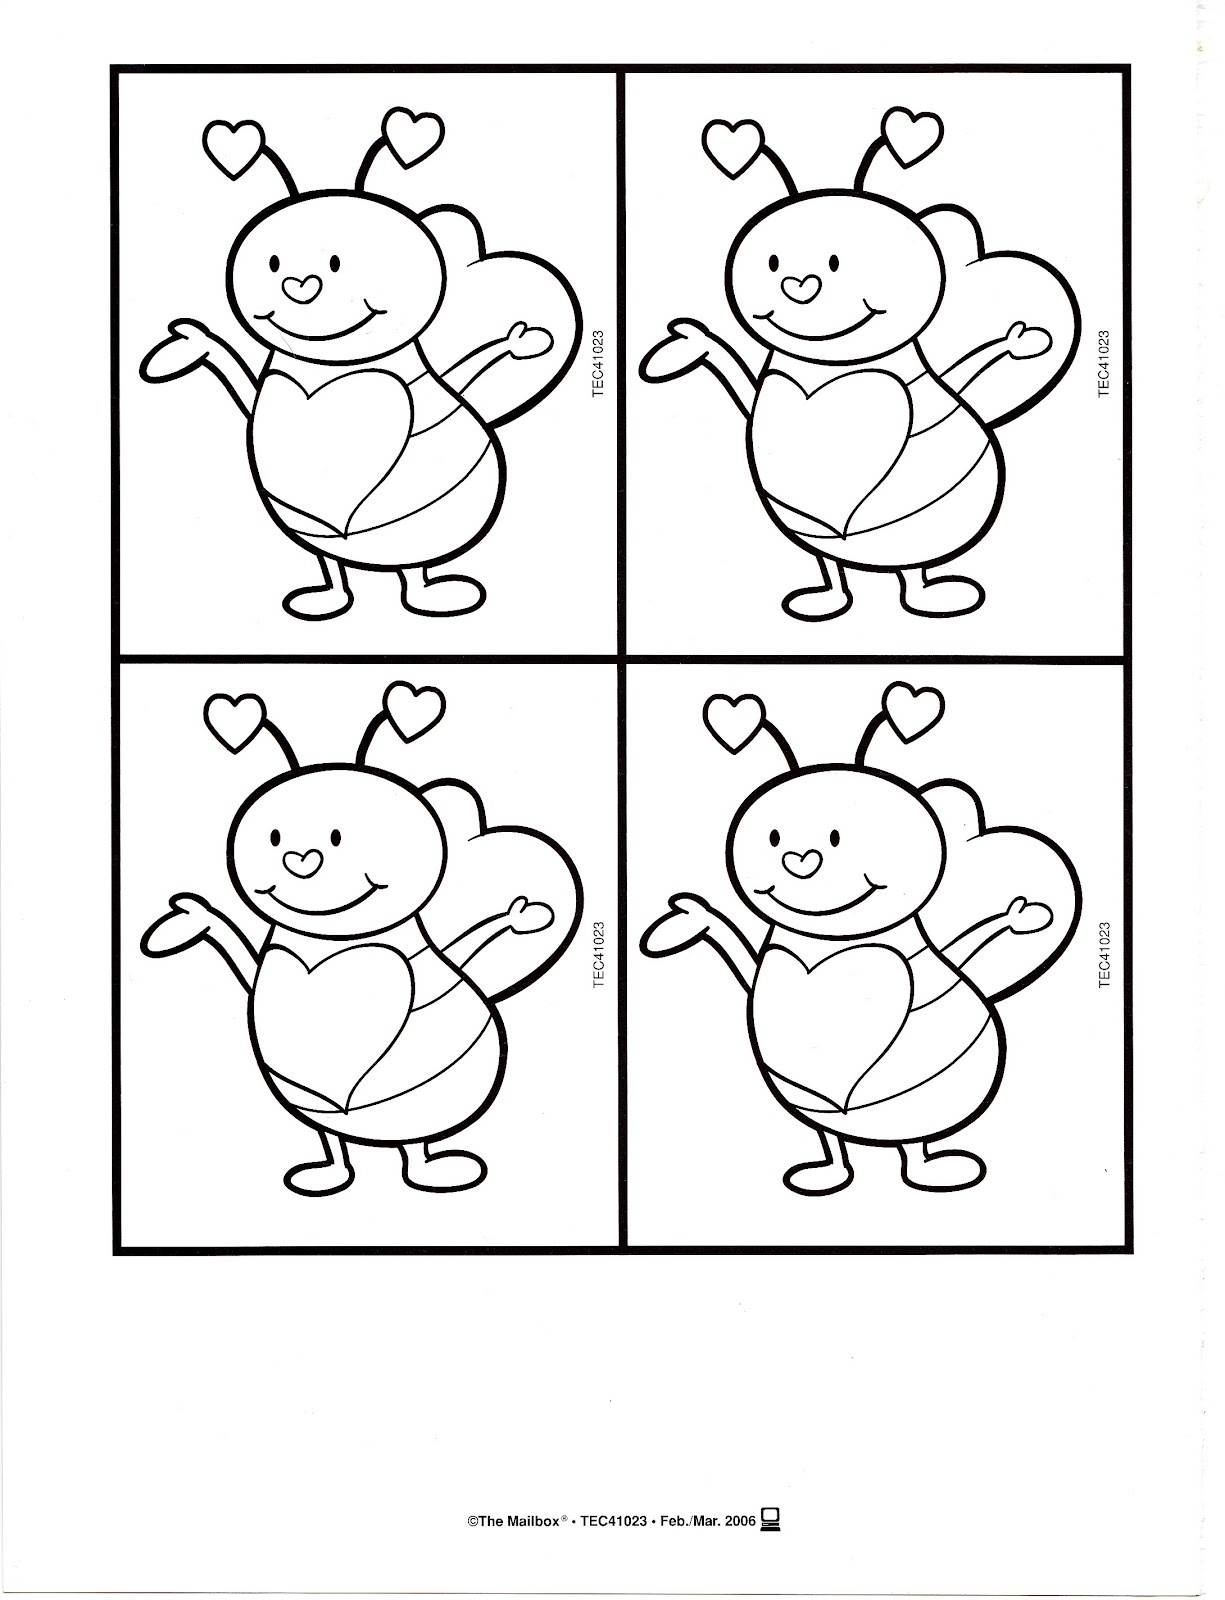 Bumble Bee Coloring Pages for Preschoolers Free Download